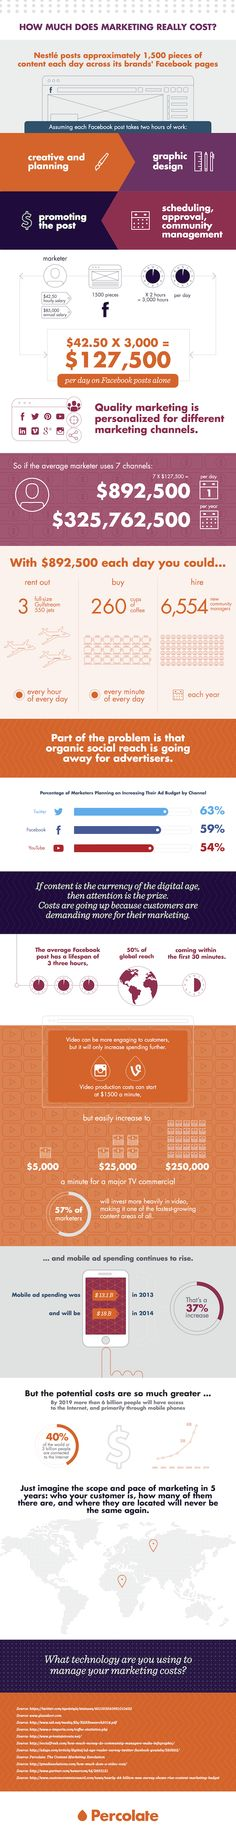 How Much Does Marketing Really Cost? [Infographic] - The Percolate Blog